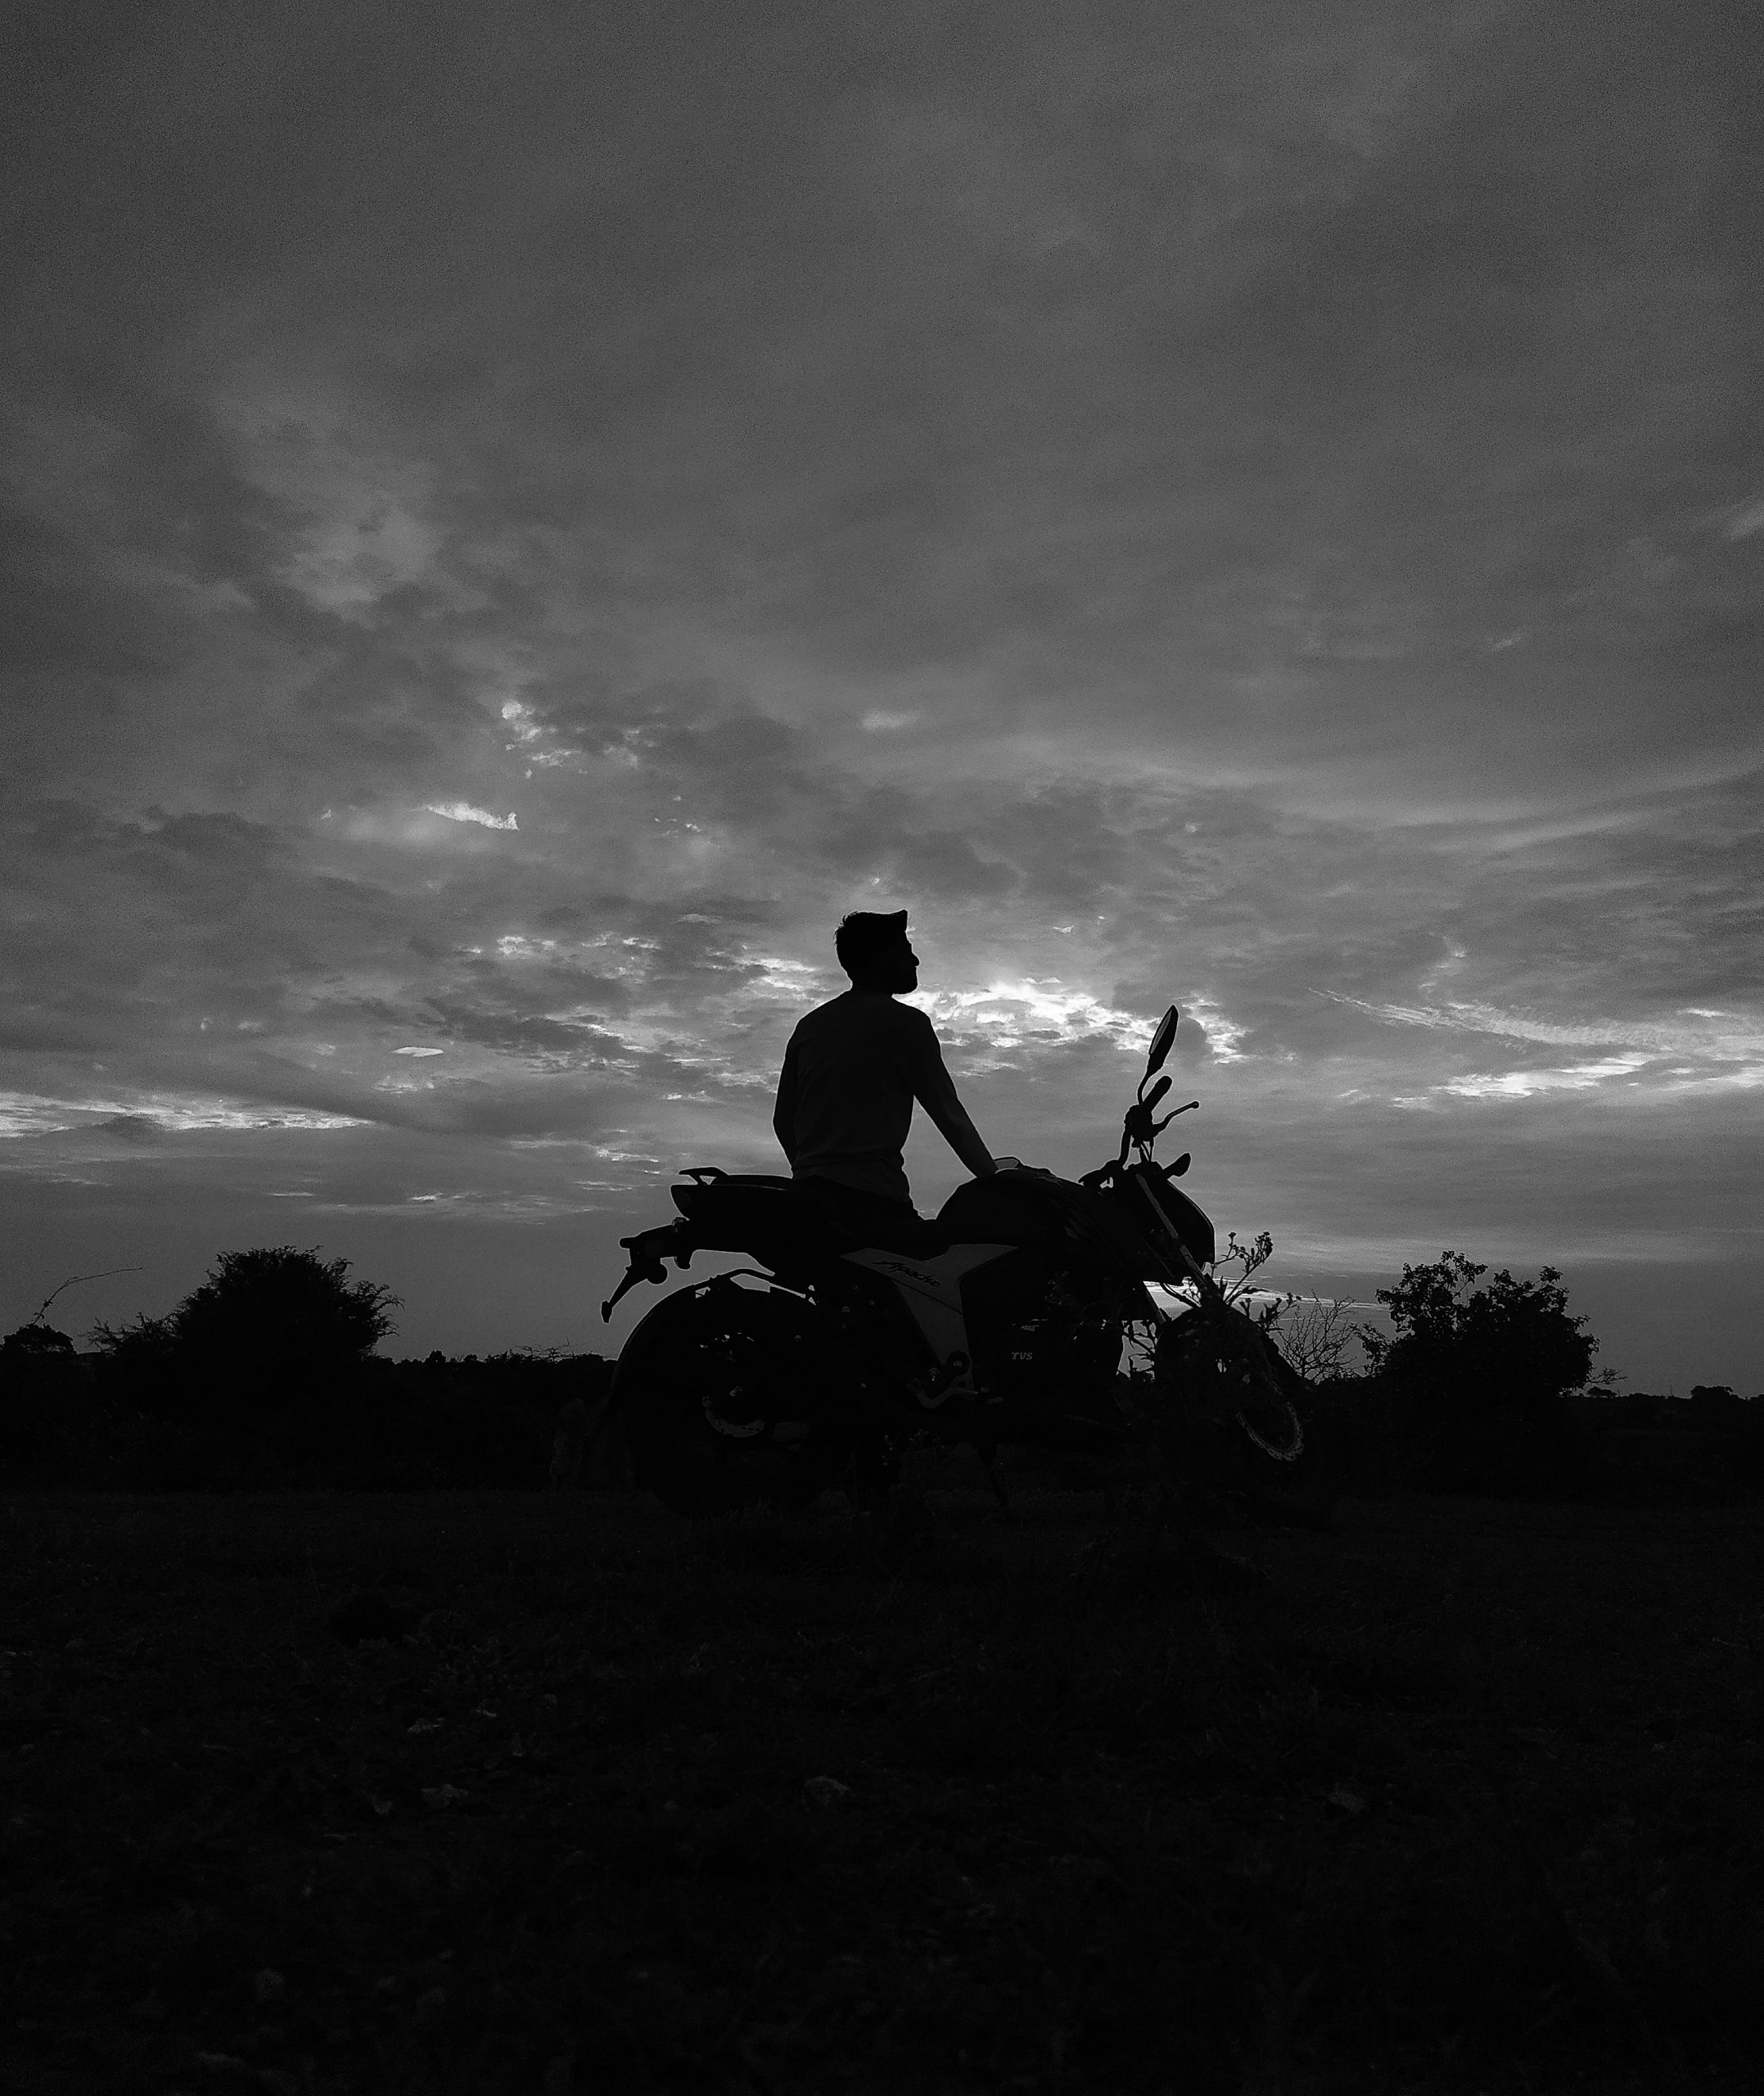 Clouds and a bike rider